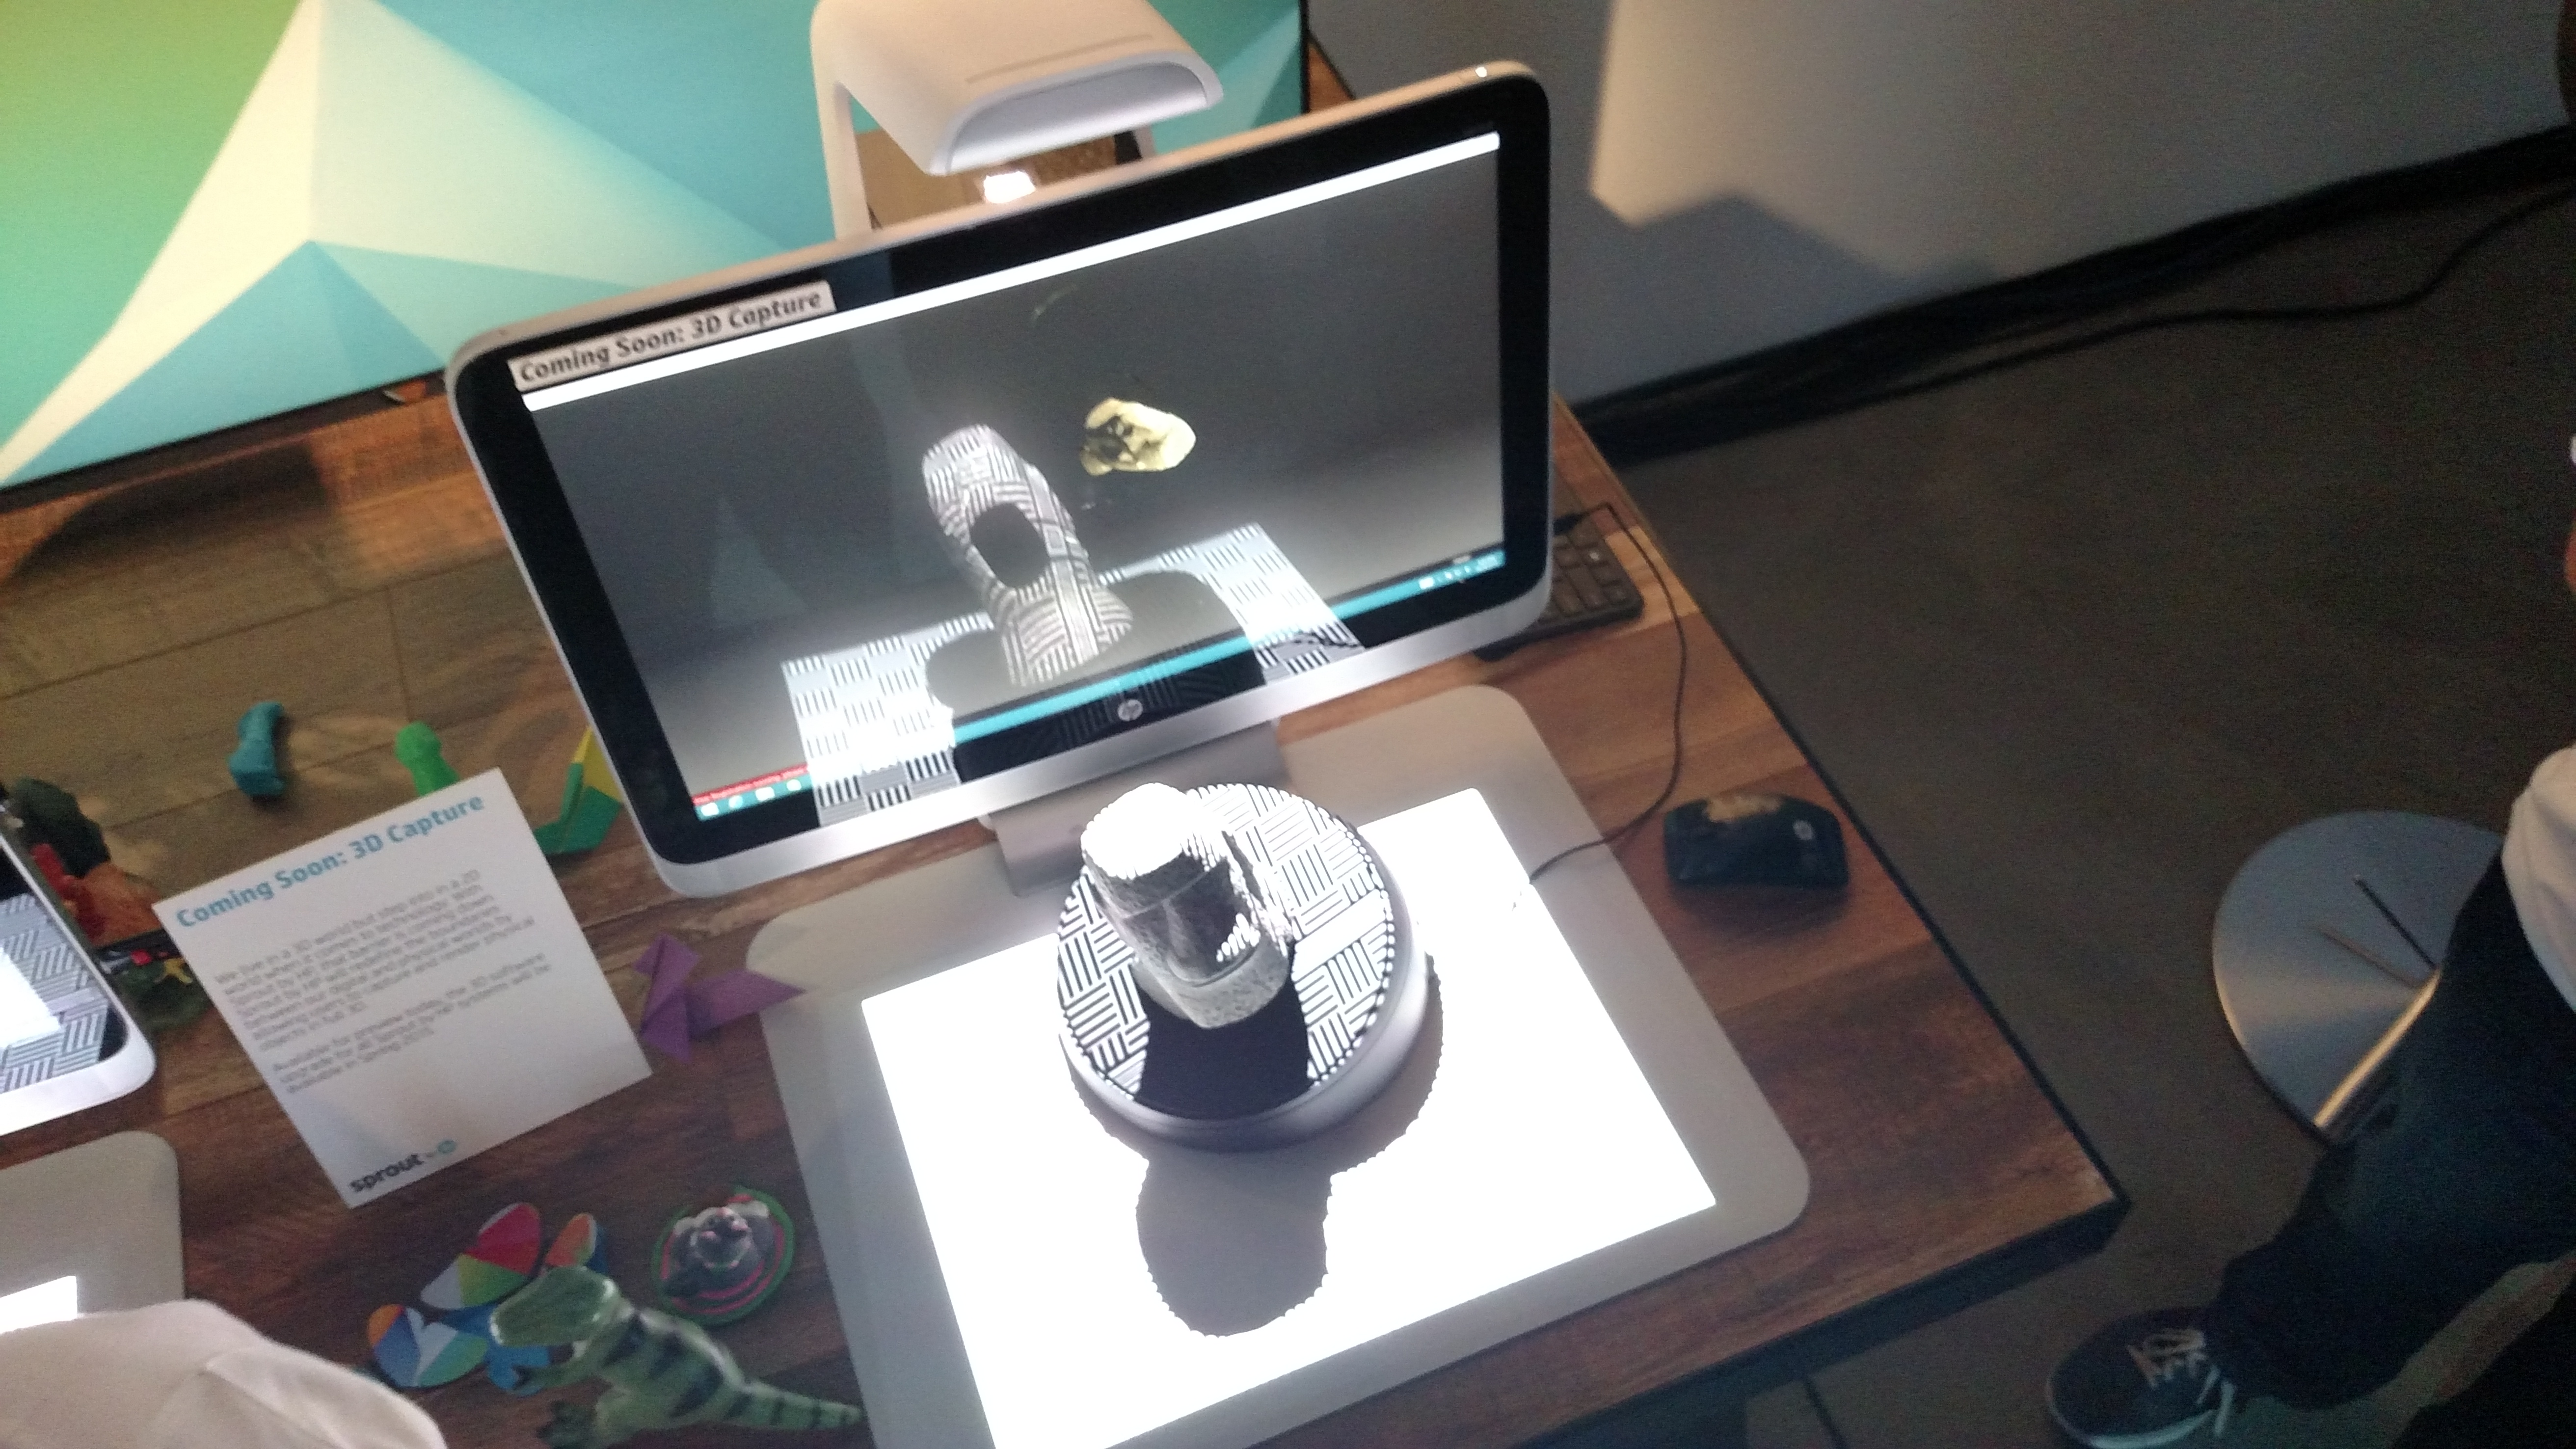 HP Turning Sprout Scanning Workstation - 3D Printing Industry